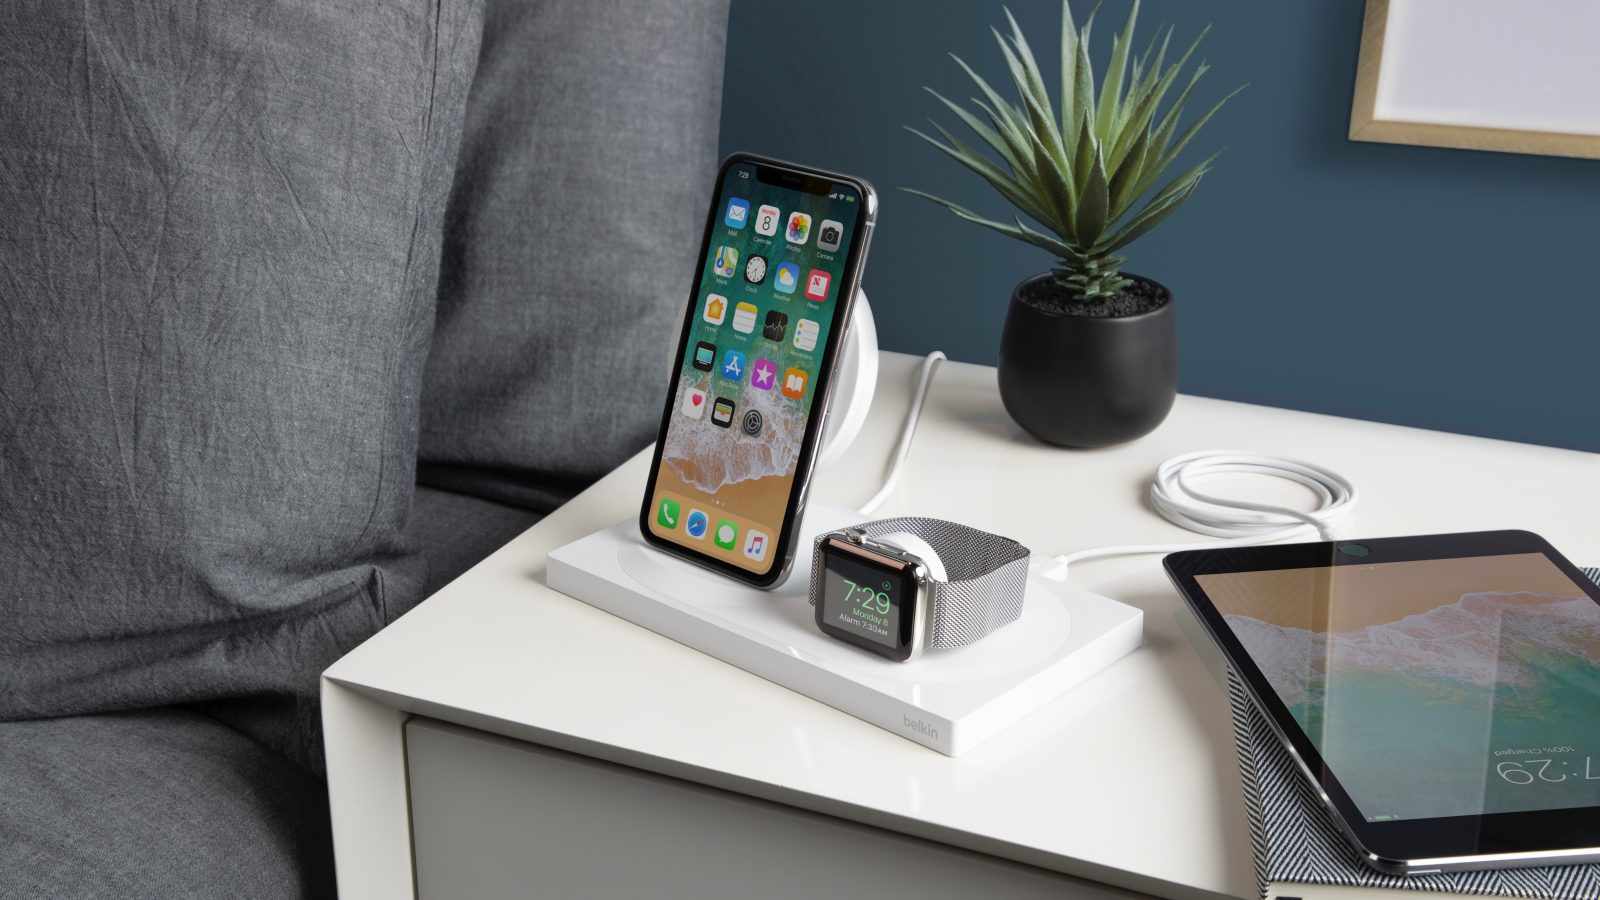 Belkin Boost Charge 3-in-1 Wireless Charger Review: Apple fans look no further!